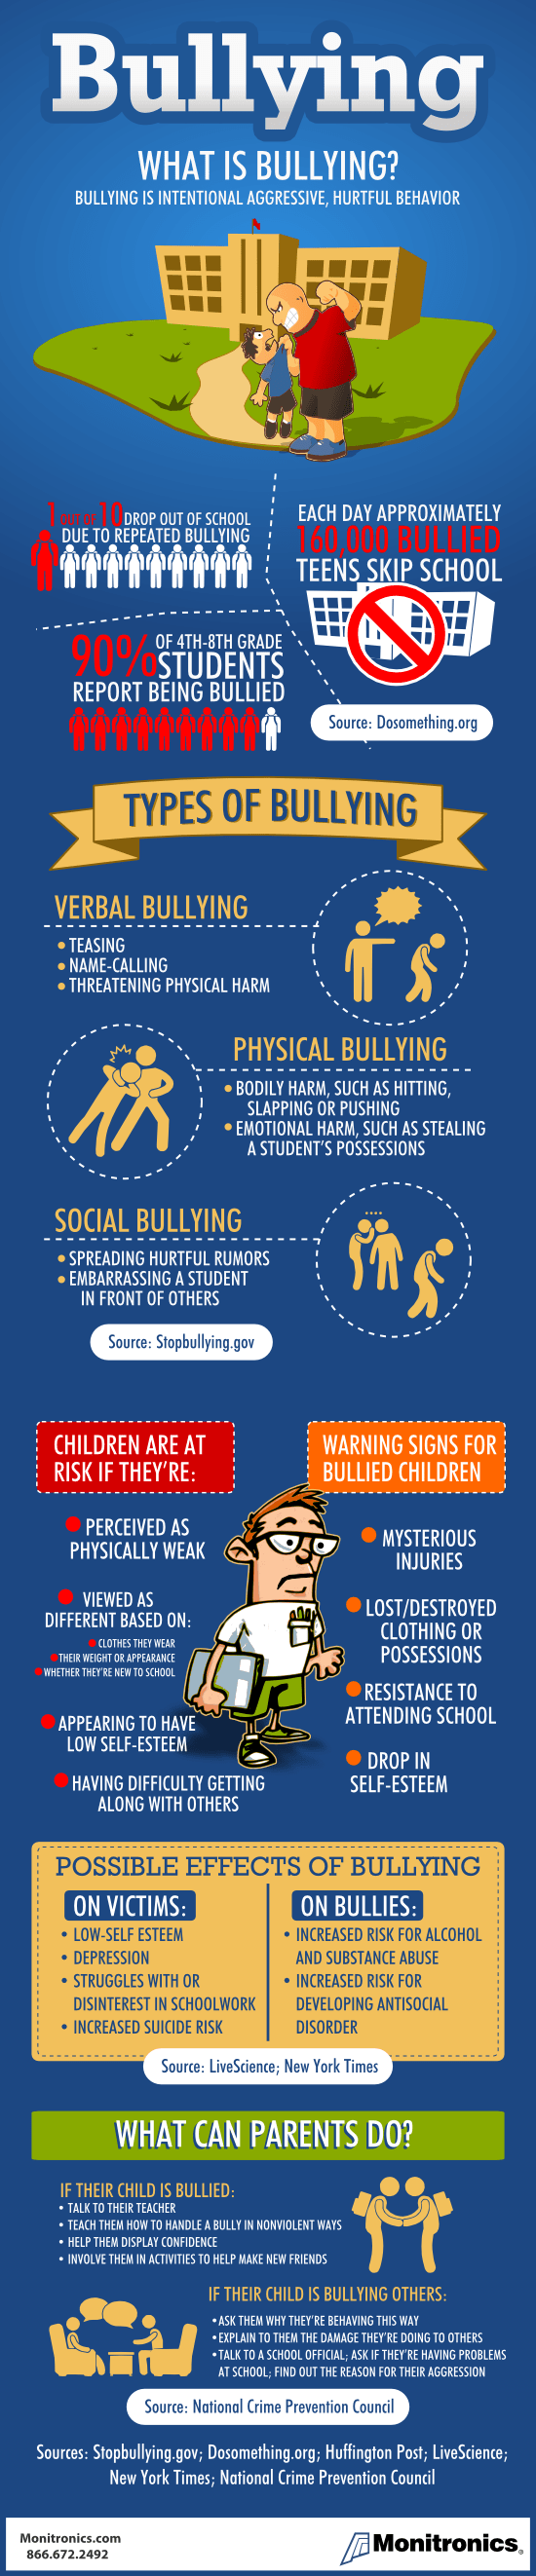 what-is-bullying--infographic_5264393892107